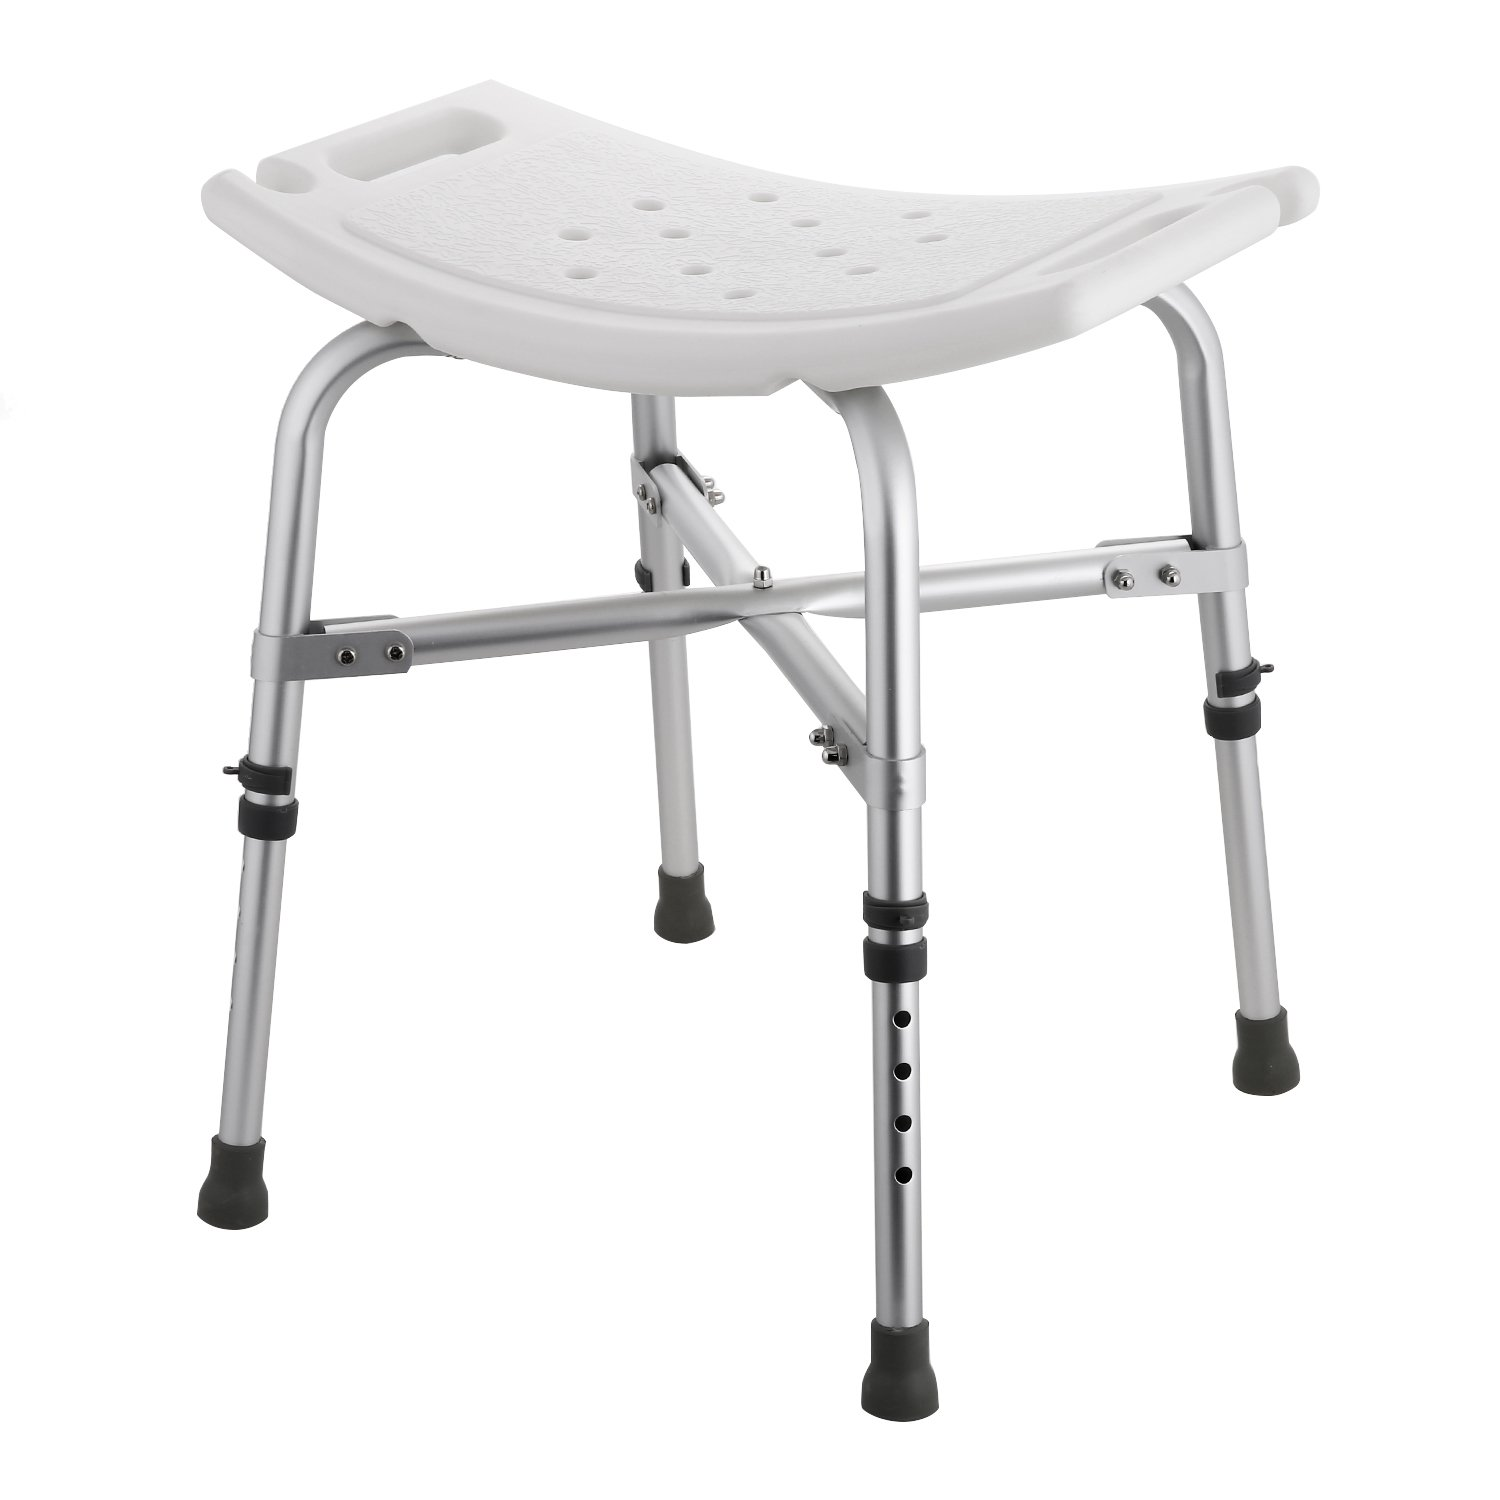 Flagup Heavy Duty Bath Bench, Adjustable Anti-Slip Bathtub Shower Stool Chair Seat,Supports up to 280lbs (Type B)